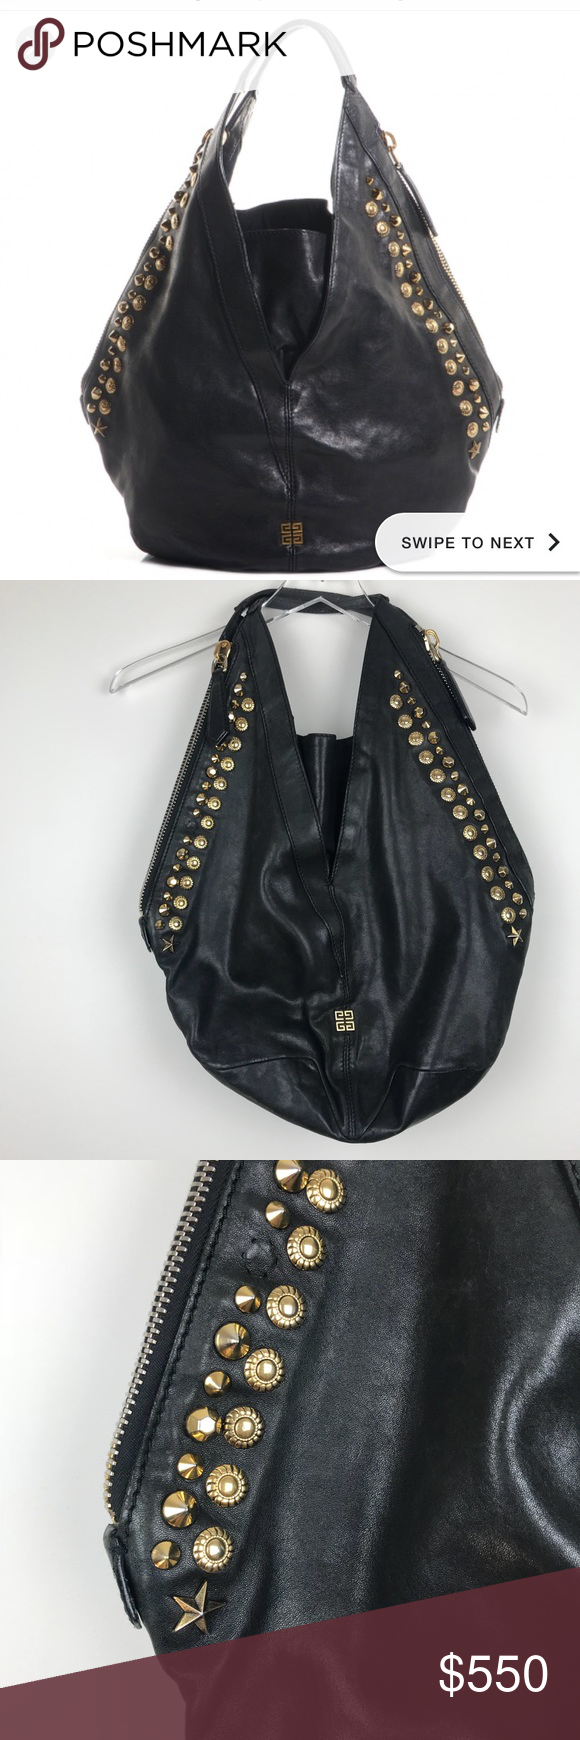 442db6a3cfb8 GIVENCHY tinhan lambskin leather hobo This was purchased secondhand